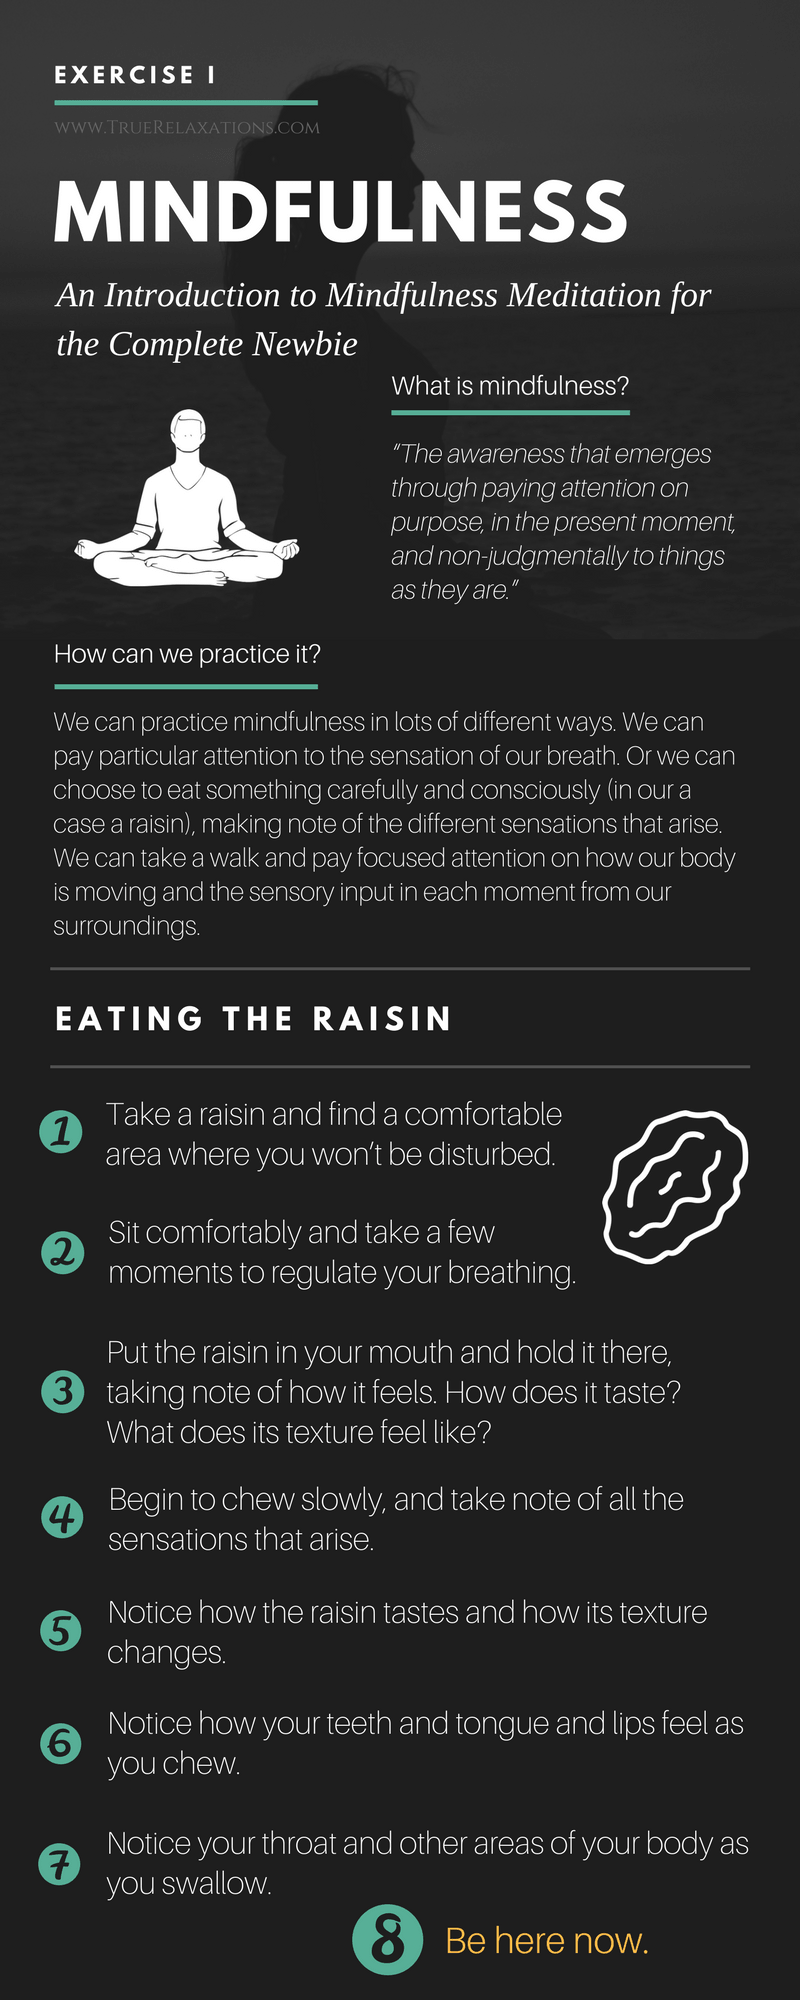 Mindfulness exercise for beginners: eating the raisin